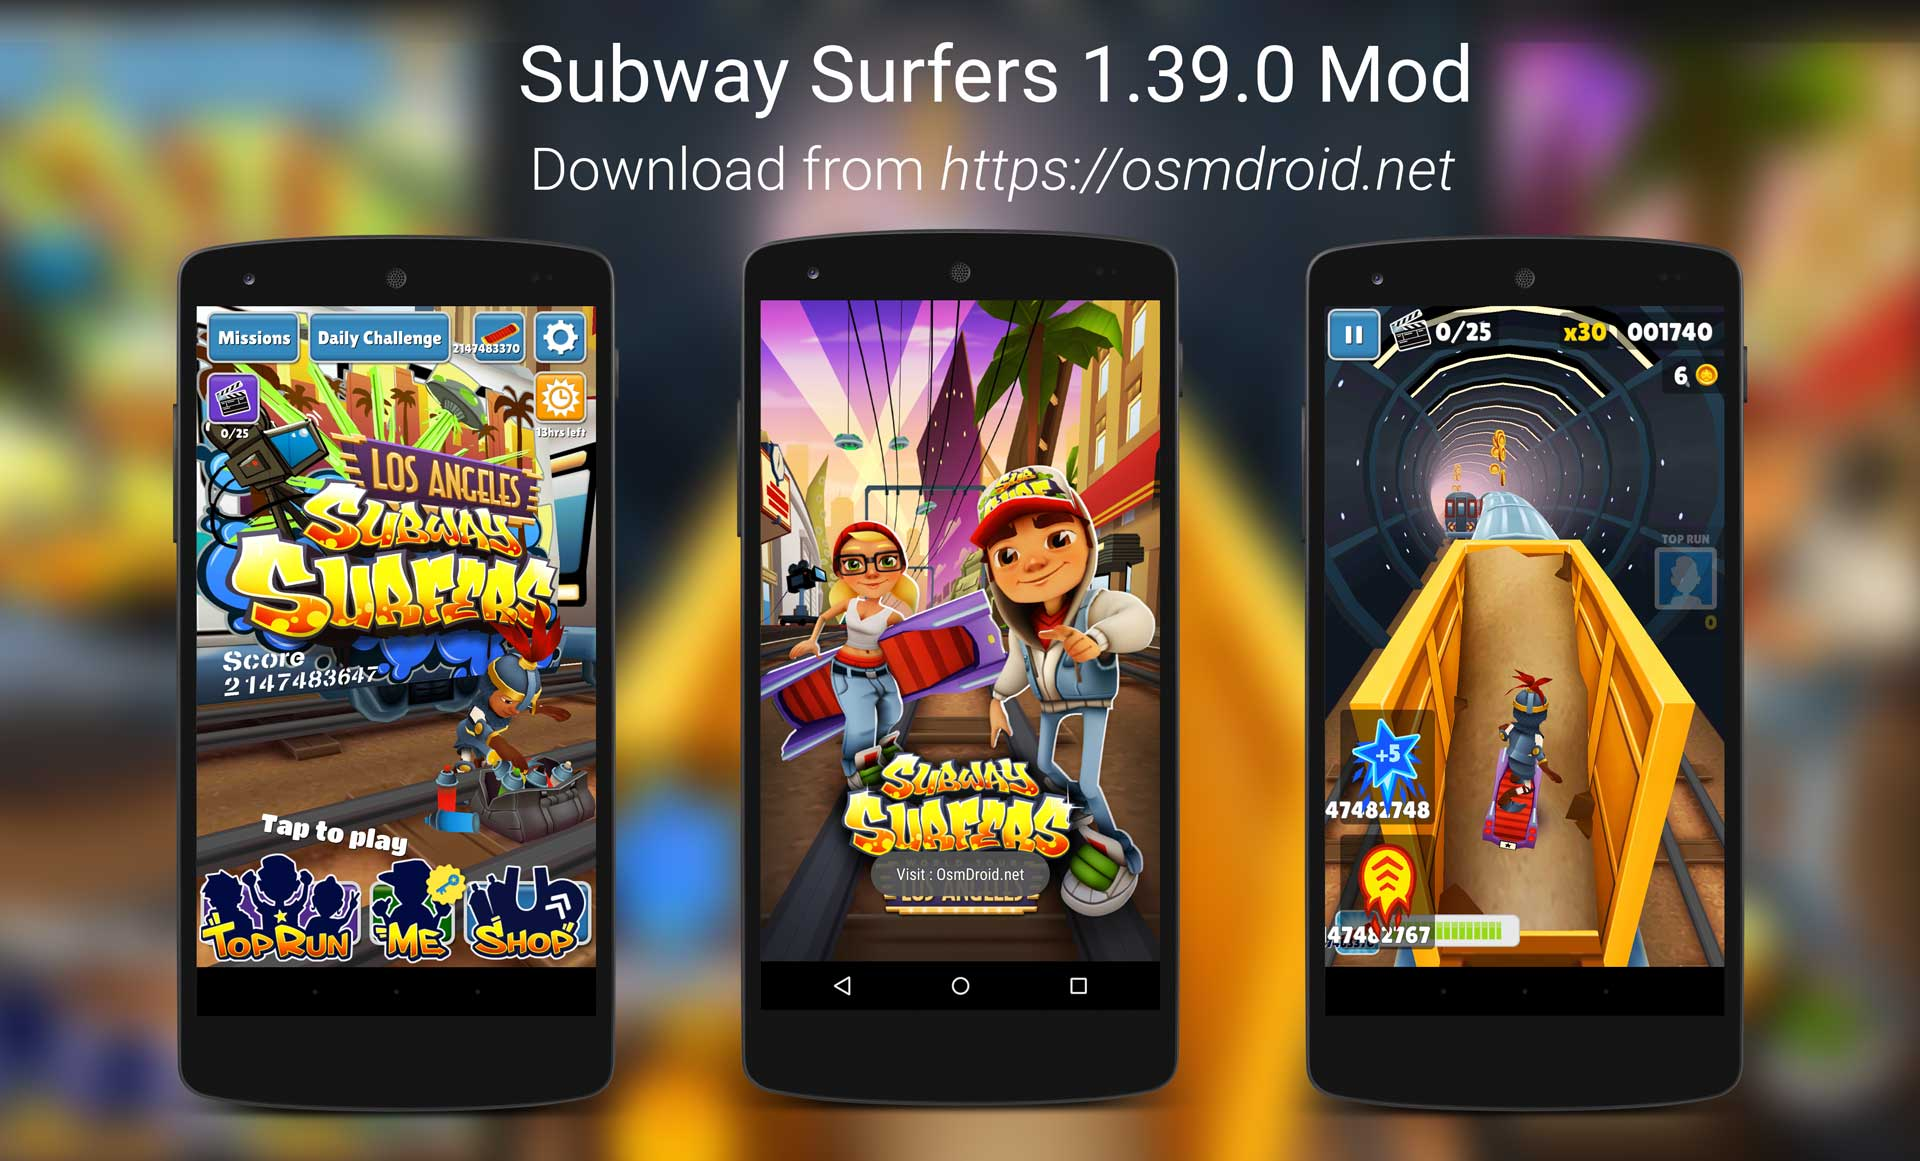 Subway Surfers 1.39.0 Mod Android APK